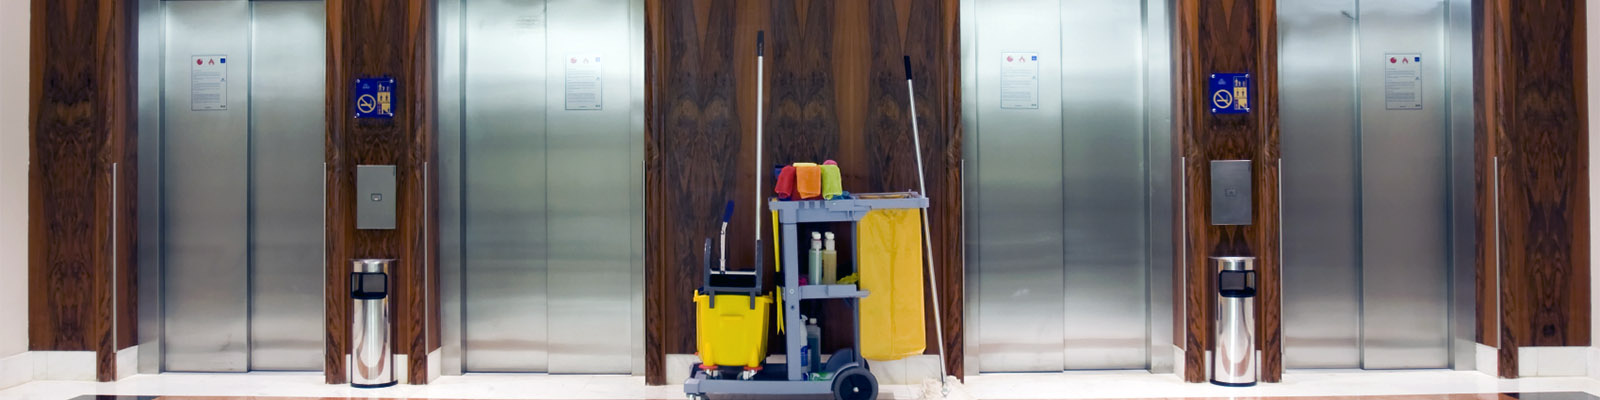 A commercial cleaning services cart in front of elevators.